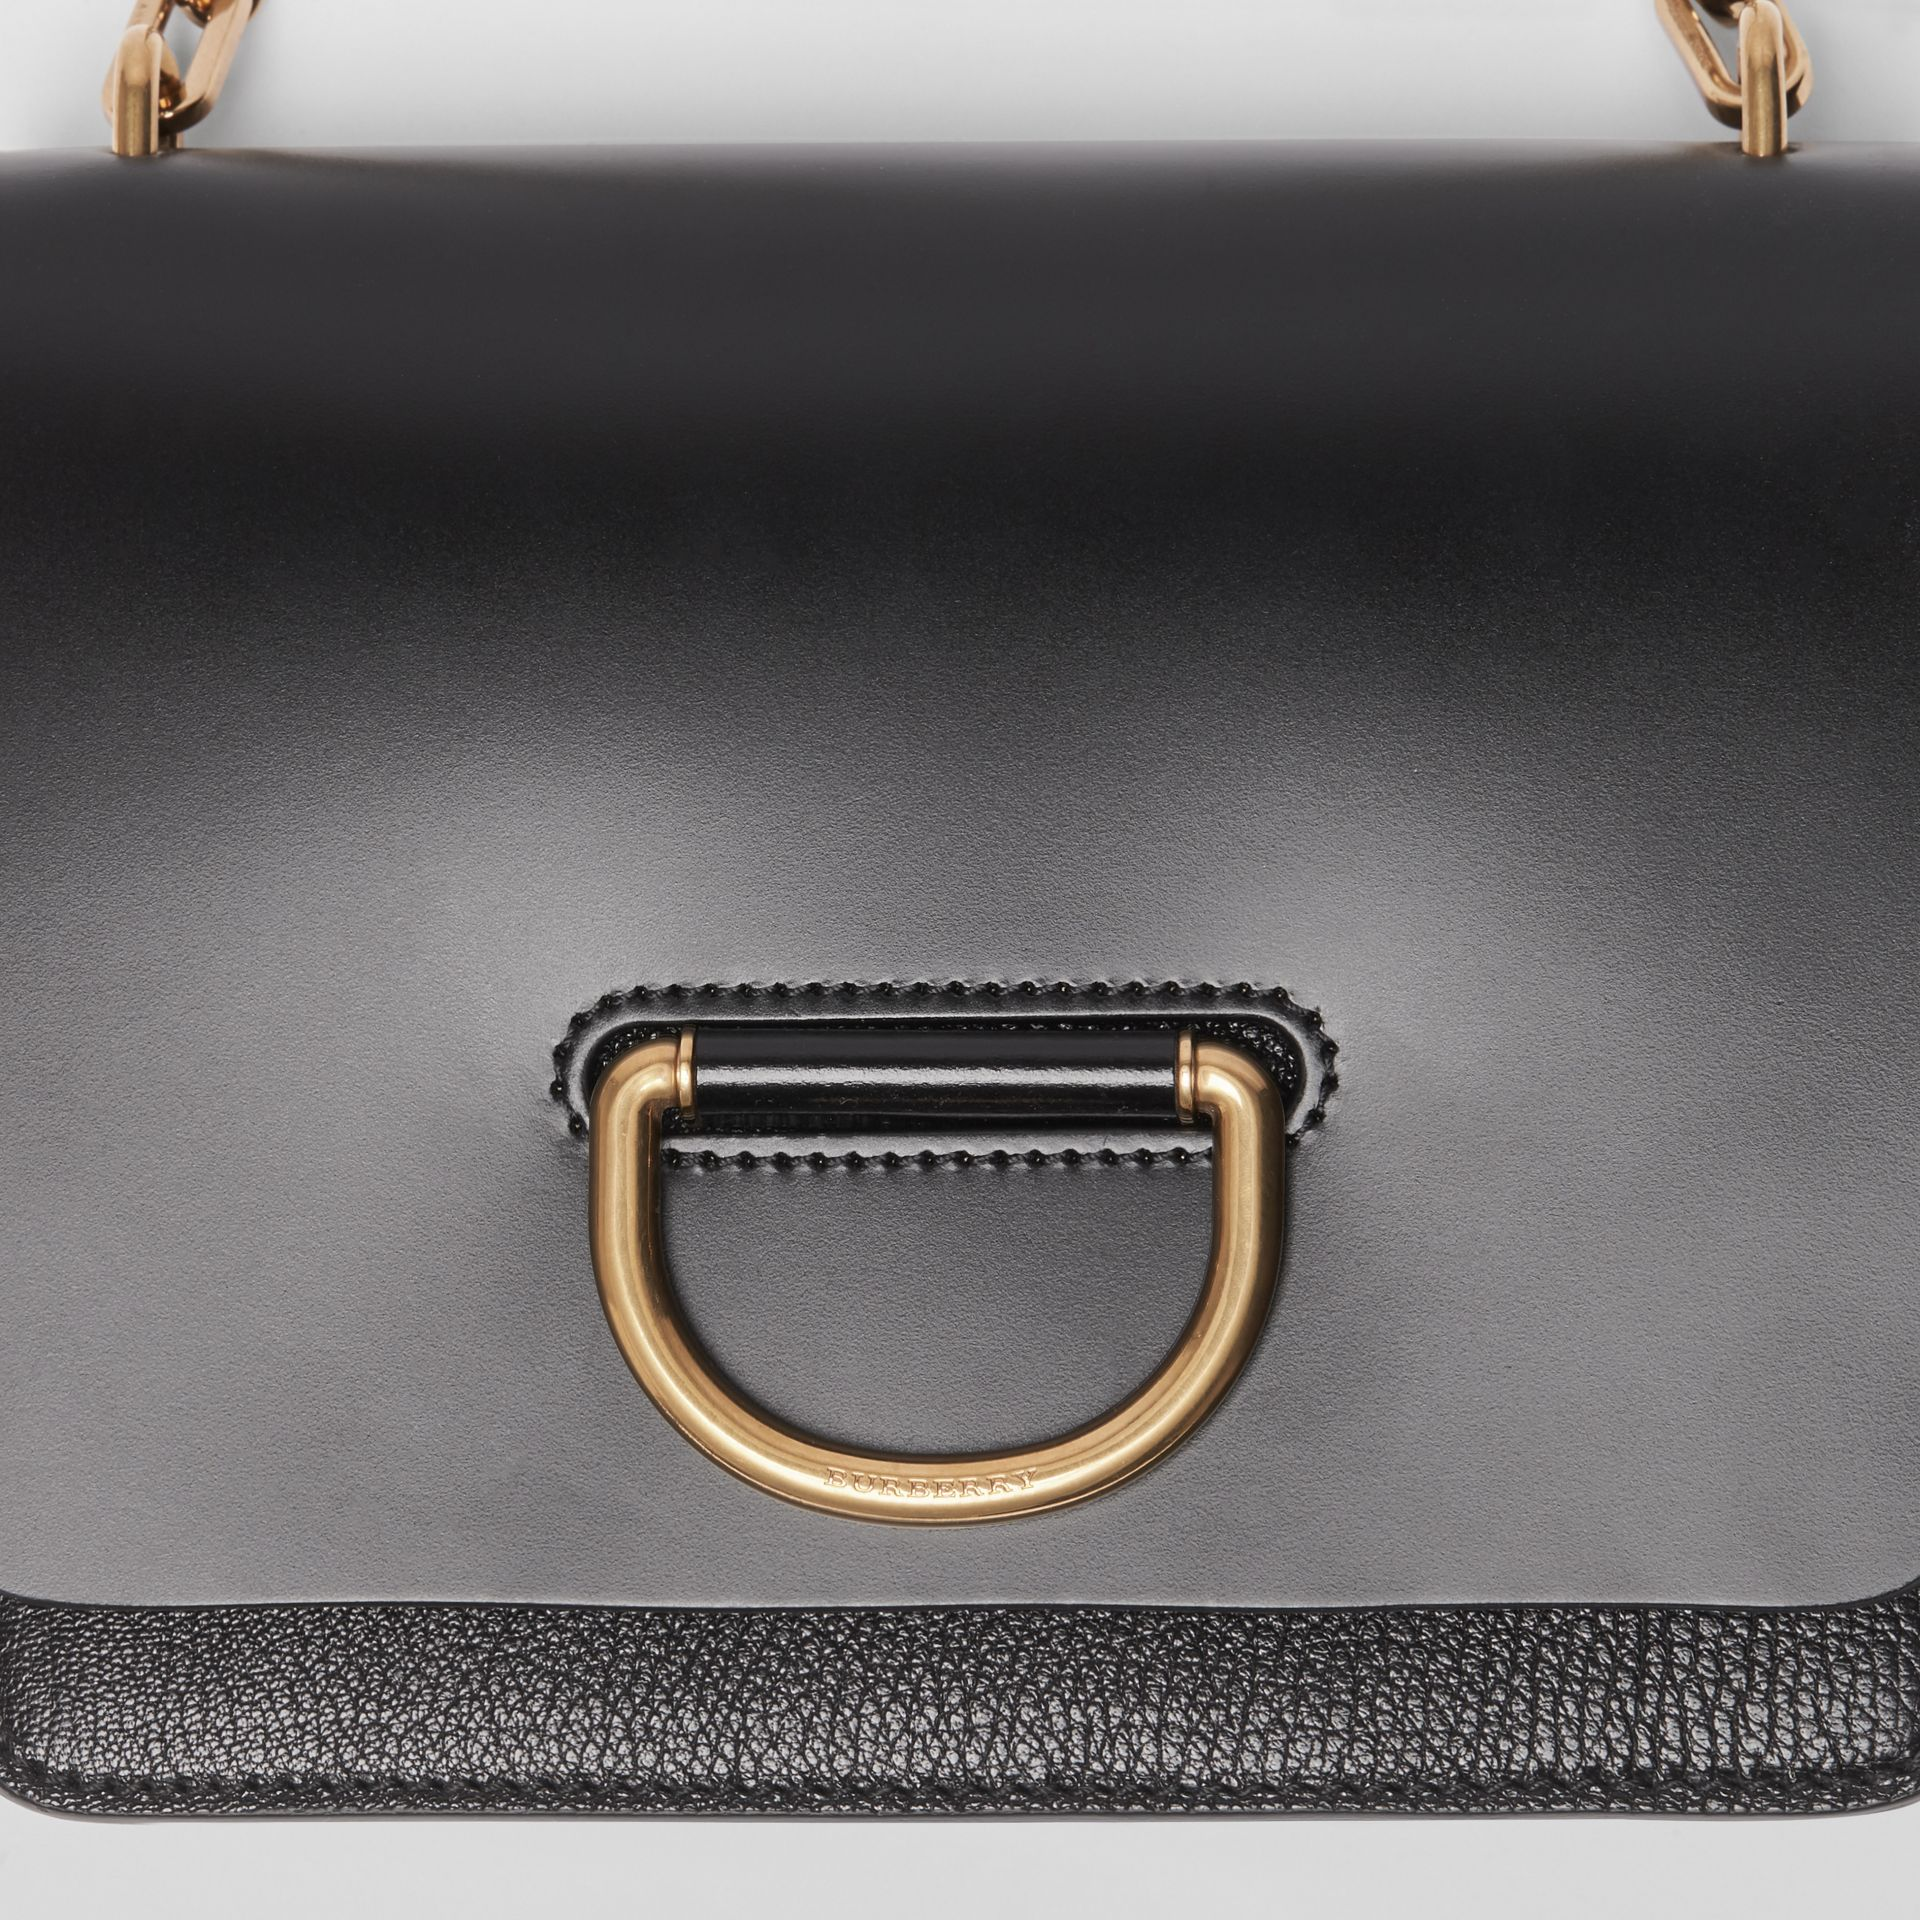 Petit sac The D-ring en cuir (Noir) - Femme | Burberry - photo de la galerie 1